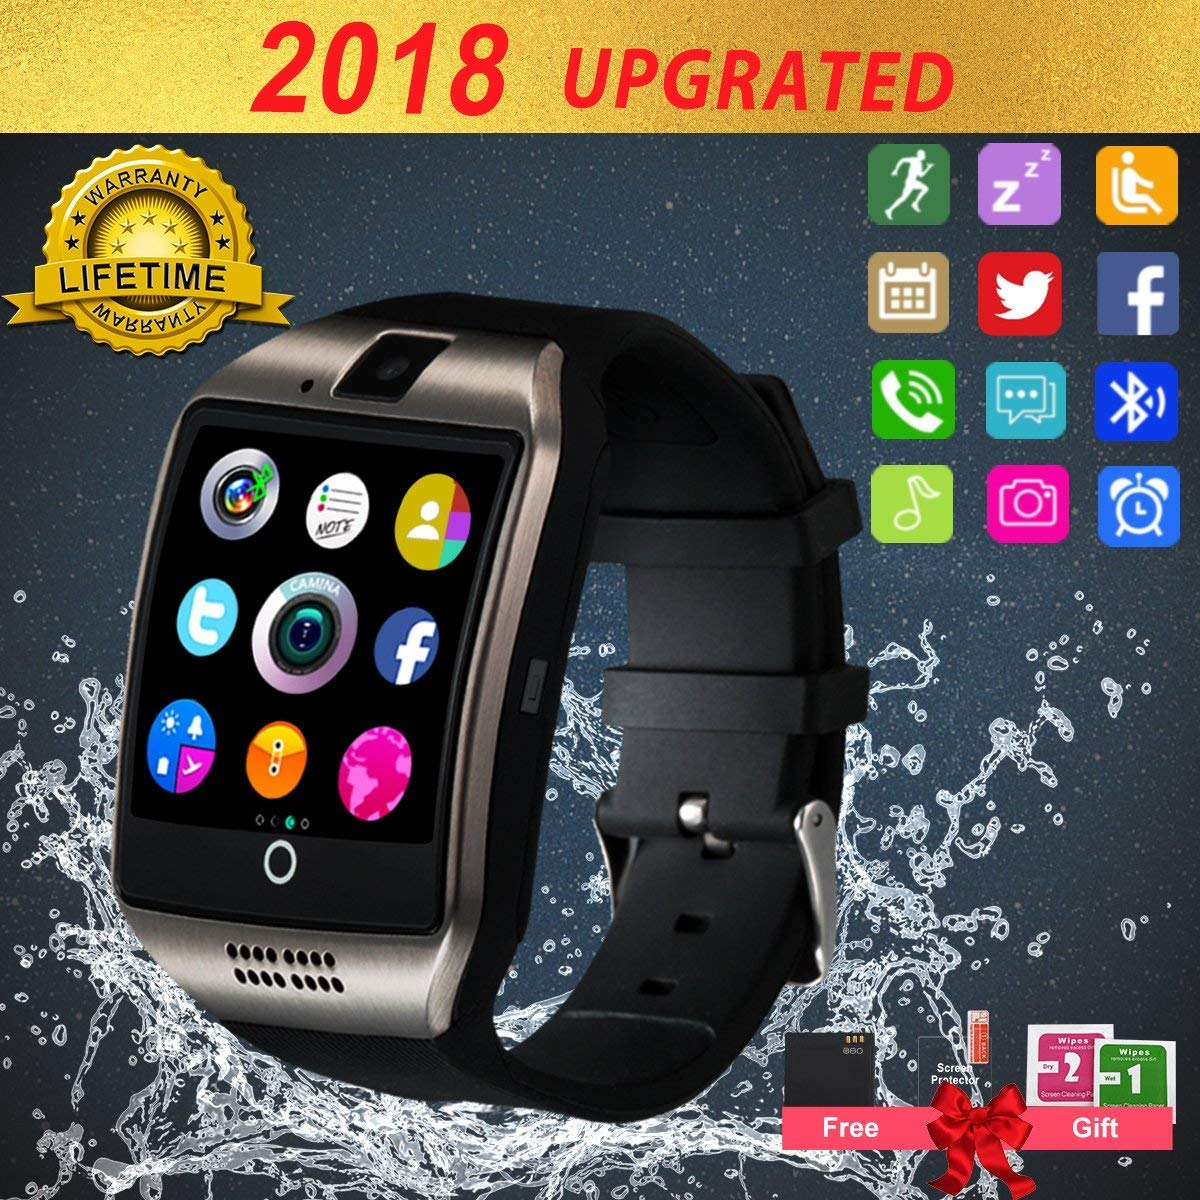 Luckymore Smart Watch, Smartwatch Touchscreen with Camera,Smart Watches with Text,Bluetooth Watch Phone with SIM Card Slot watch cell Phone for Men Women Youth